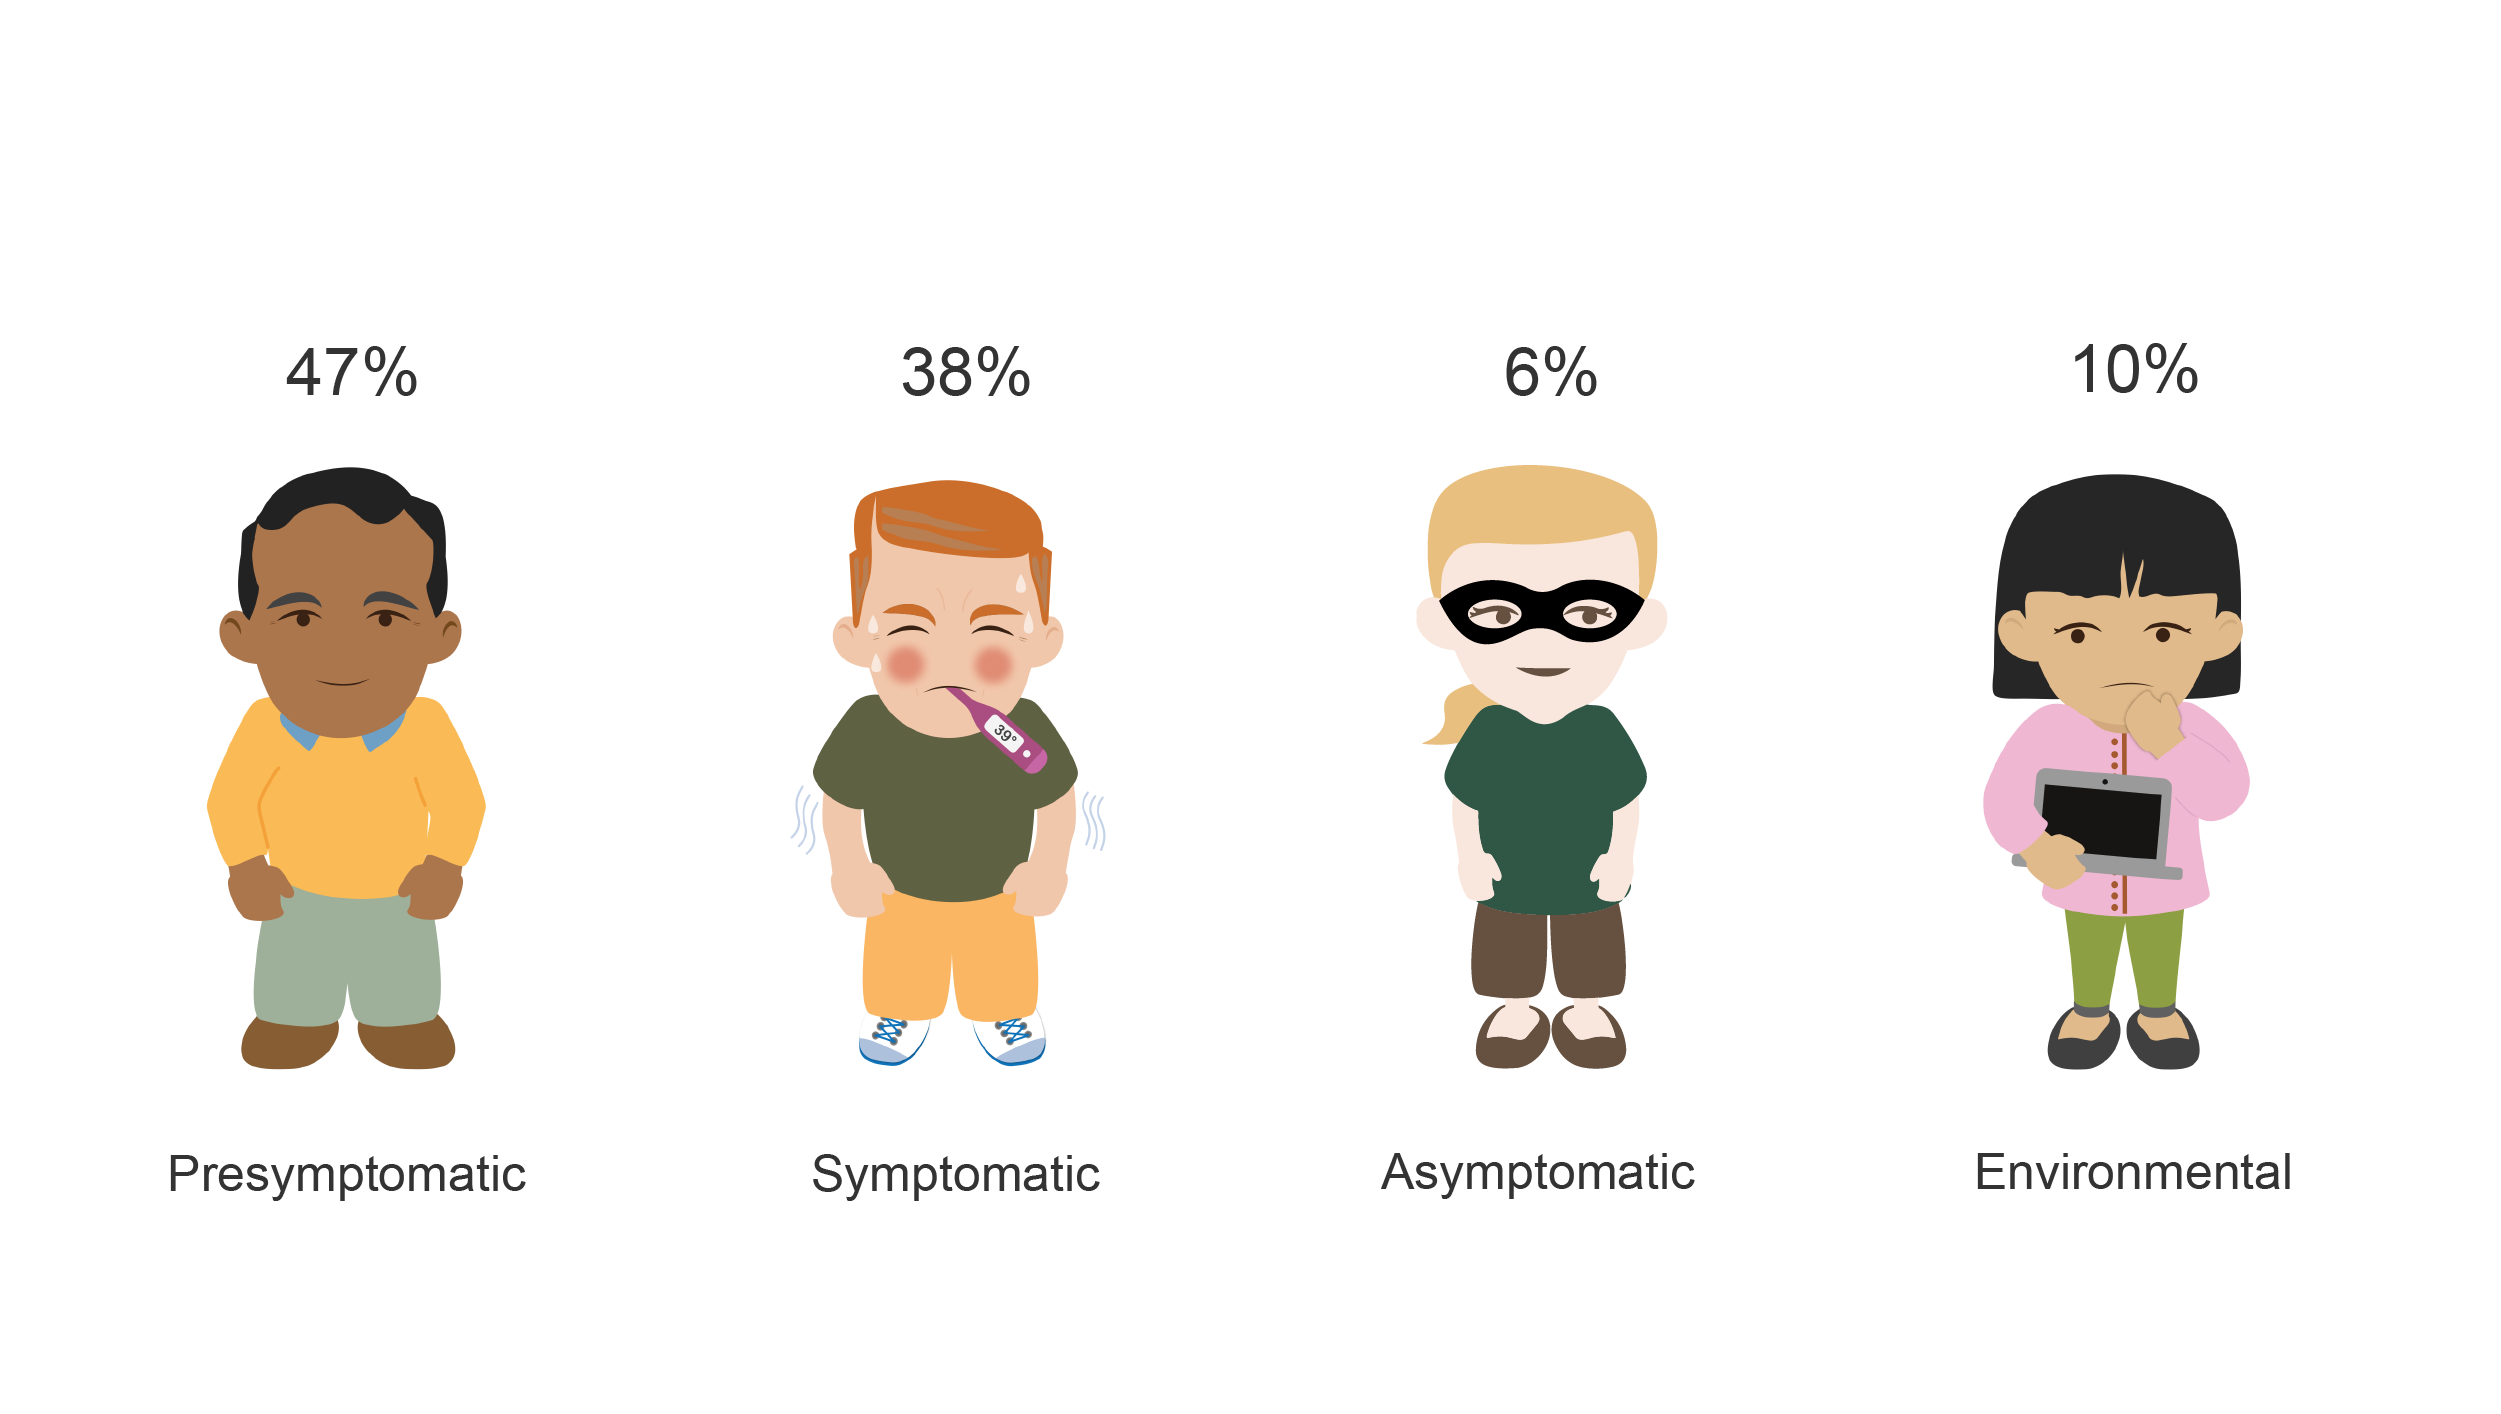 Four cartoons showing the modes of transmission of COVID-19, presymptomatic (47%), symptomatic (38%), asymptomatic (6%), and environmental (10%).